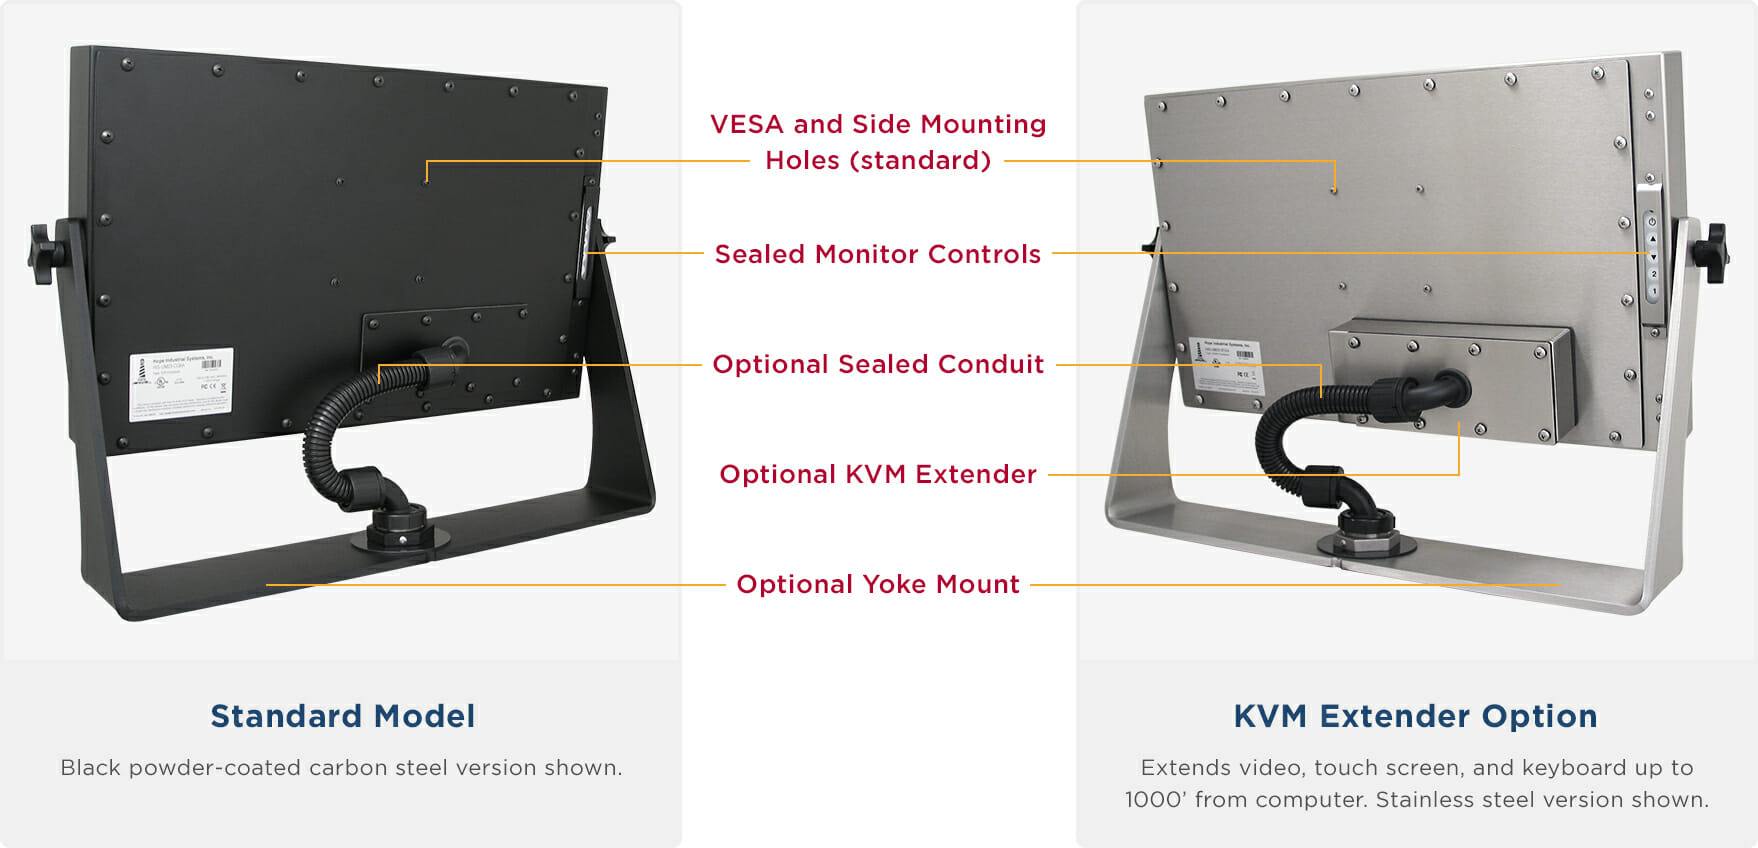 "Rear views of NEMA 4/4X Rated Widescreen 23"" Universal Mount Monitors showing Industrial Enclosure features and options"